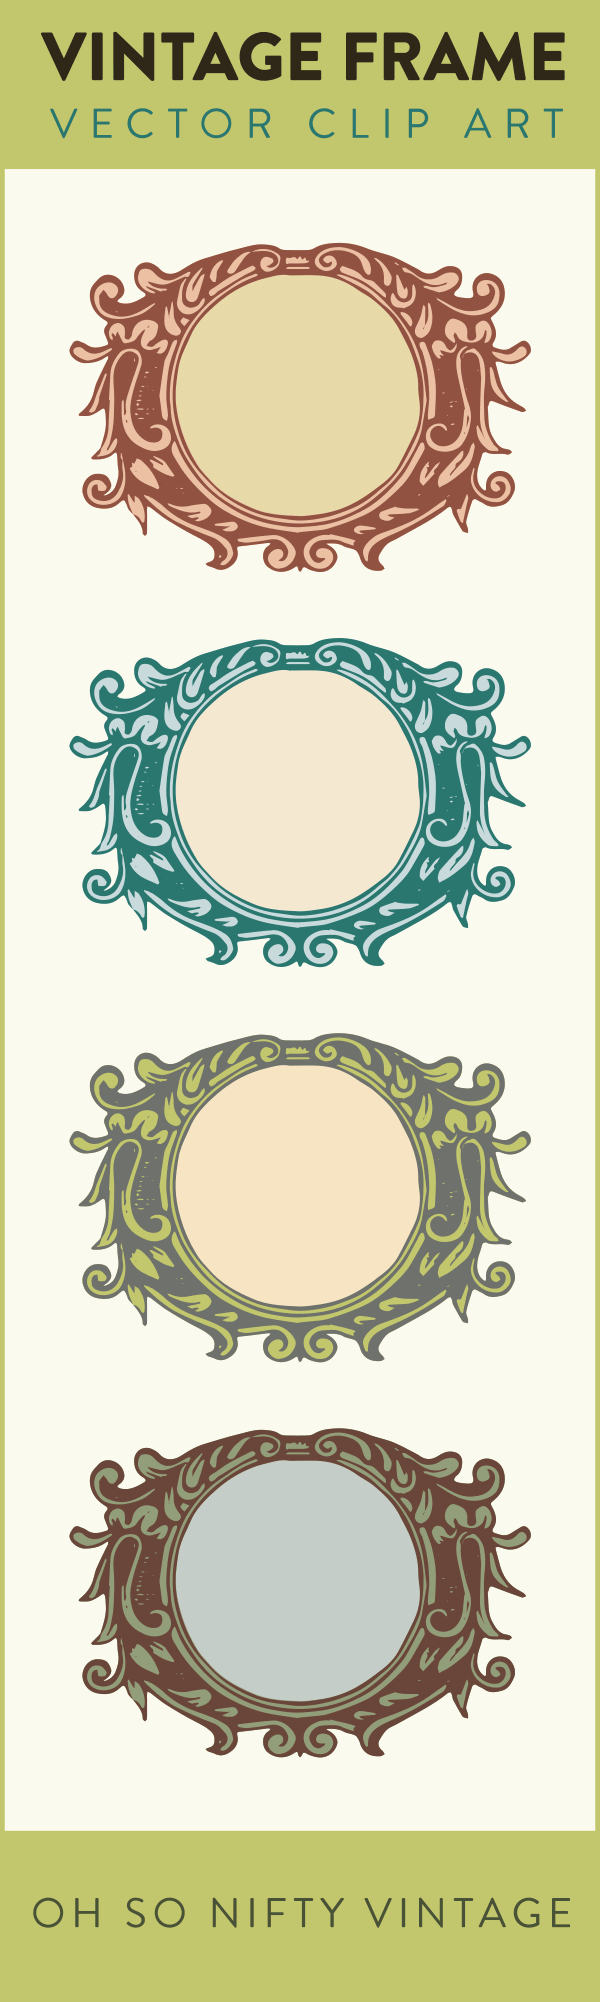 Stock Images | Vintage Flourish Frames